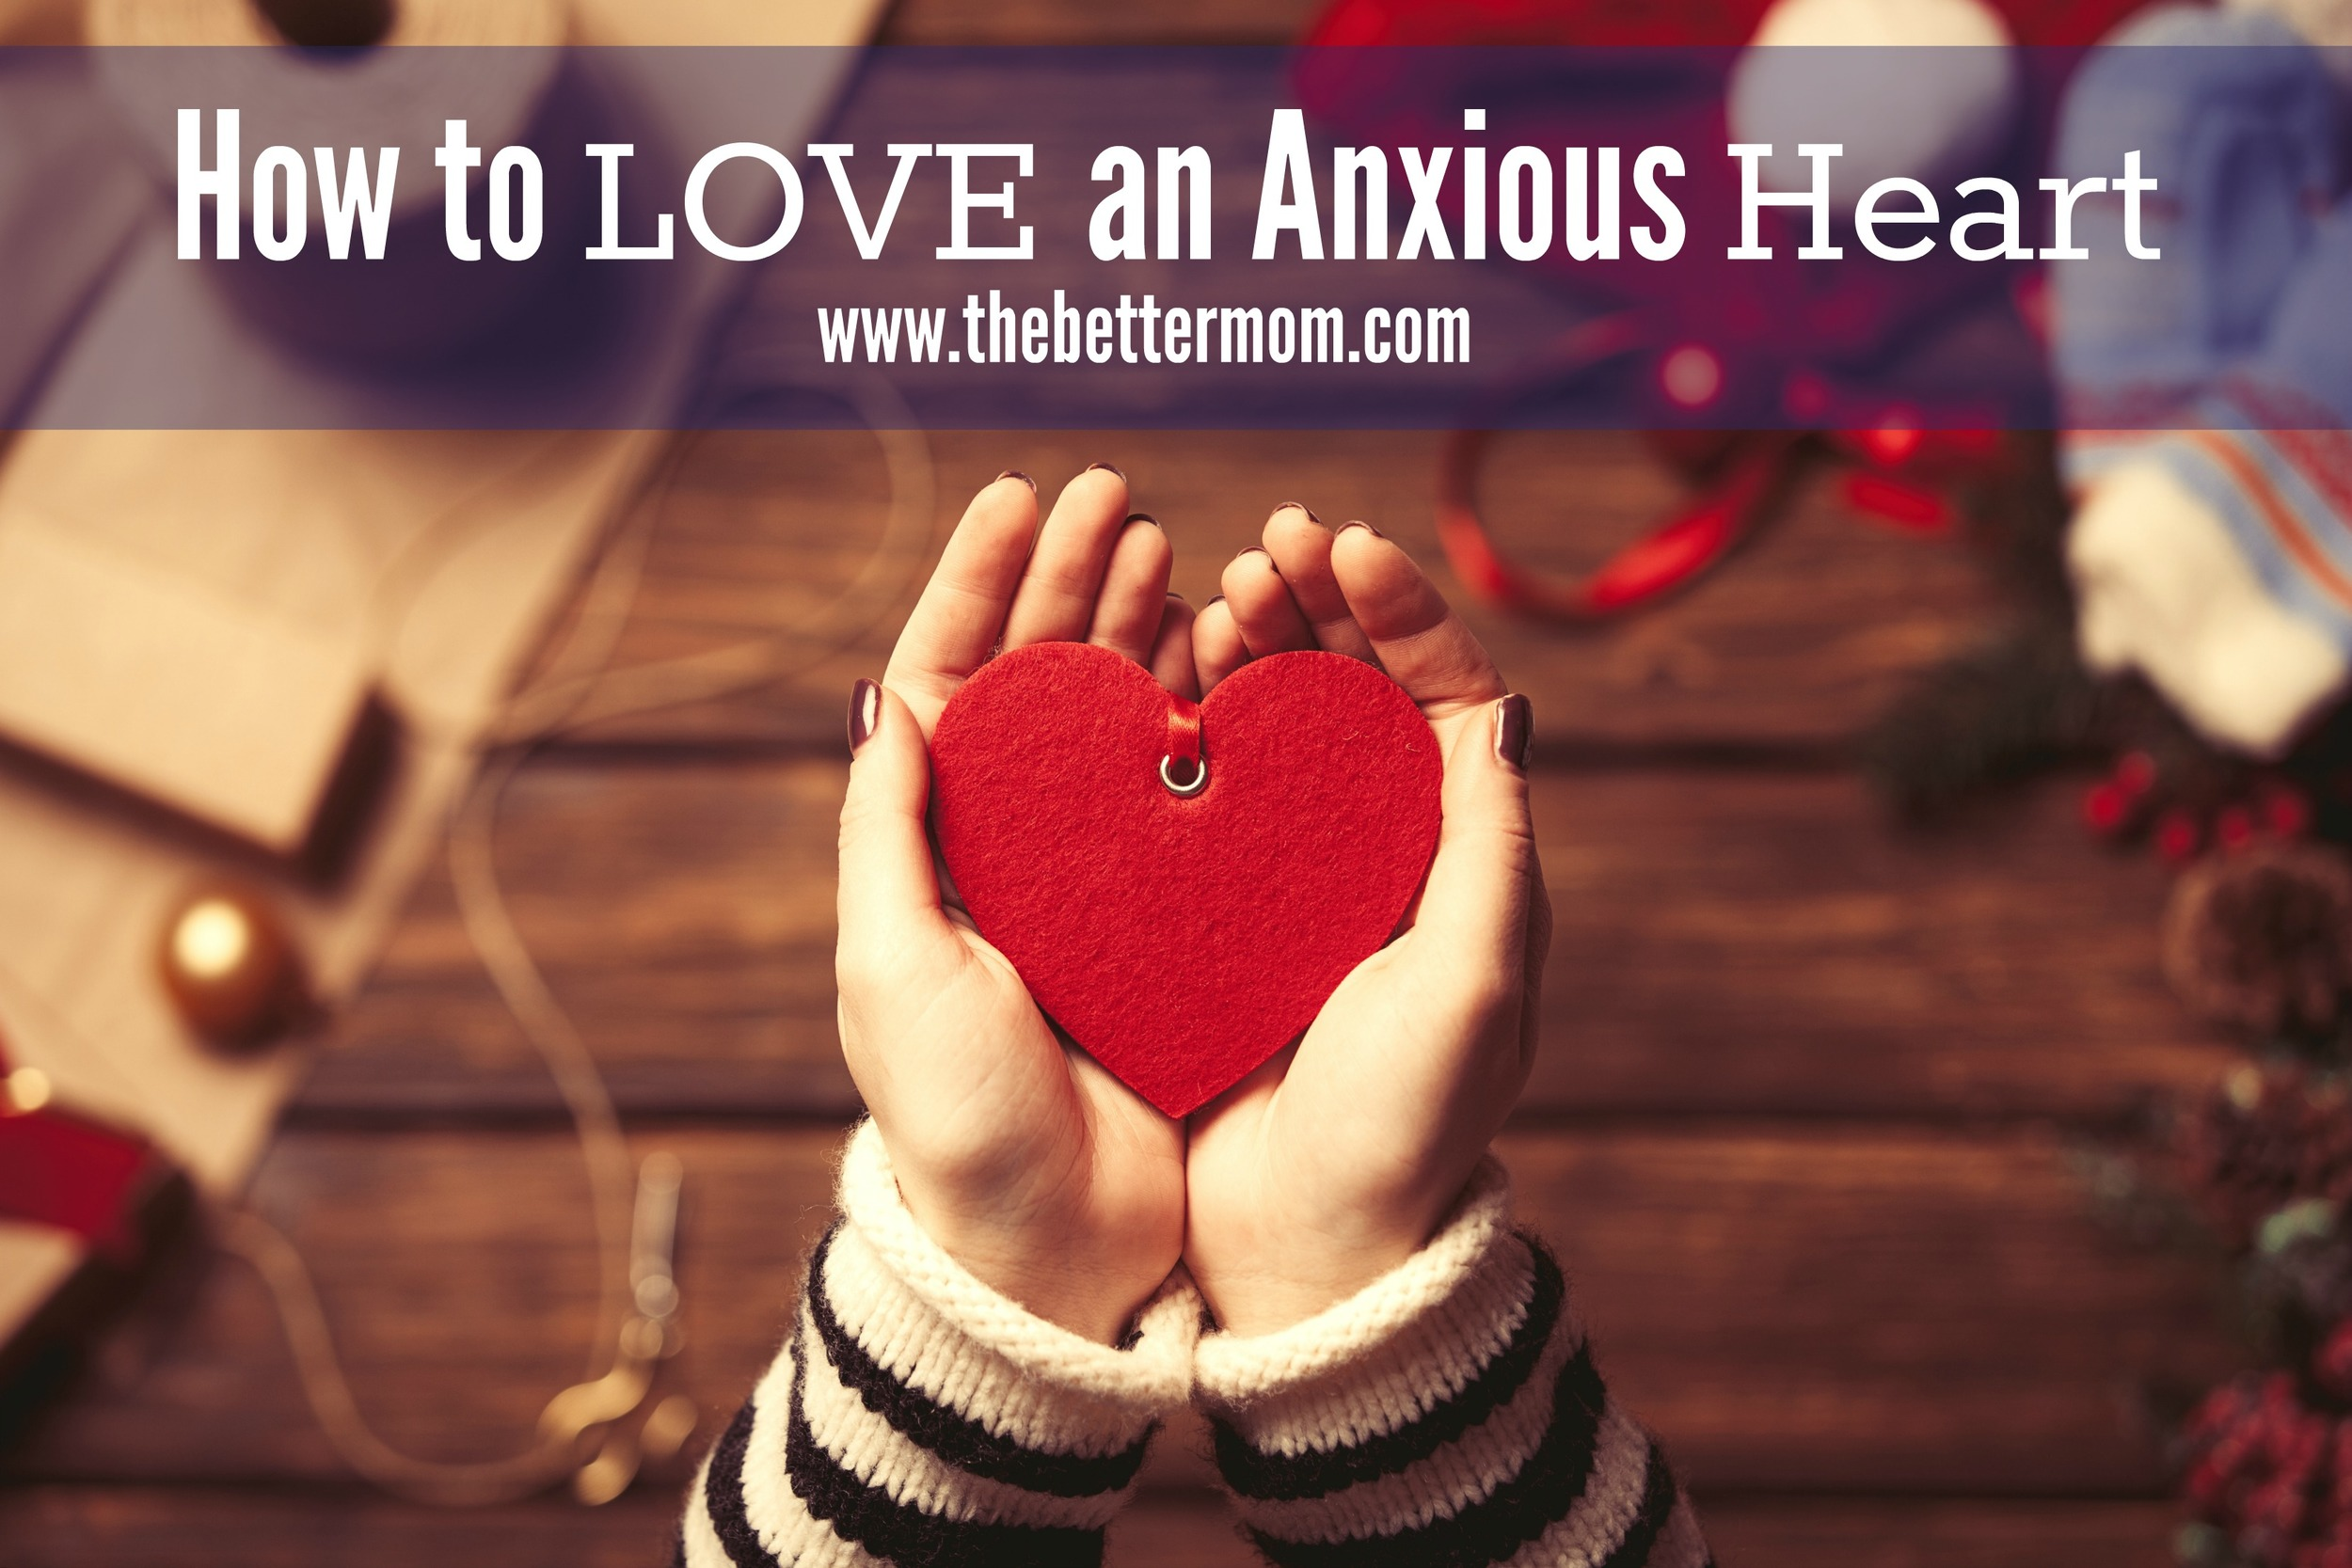 How can you help a friend, a family member, or a spouse who is struggling  with anxiety? There are practical ways to be an encouragement and help them heal. Here are a few ideas to get you started.